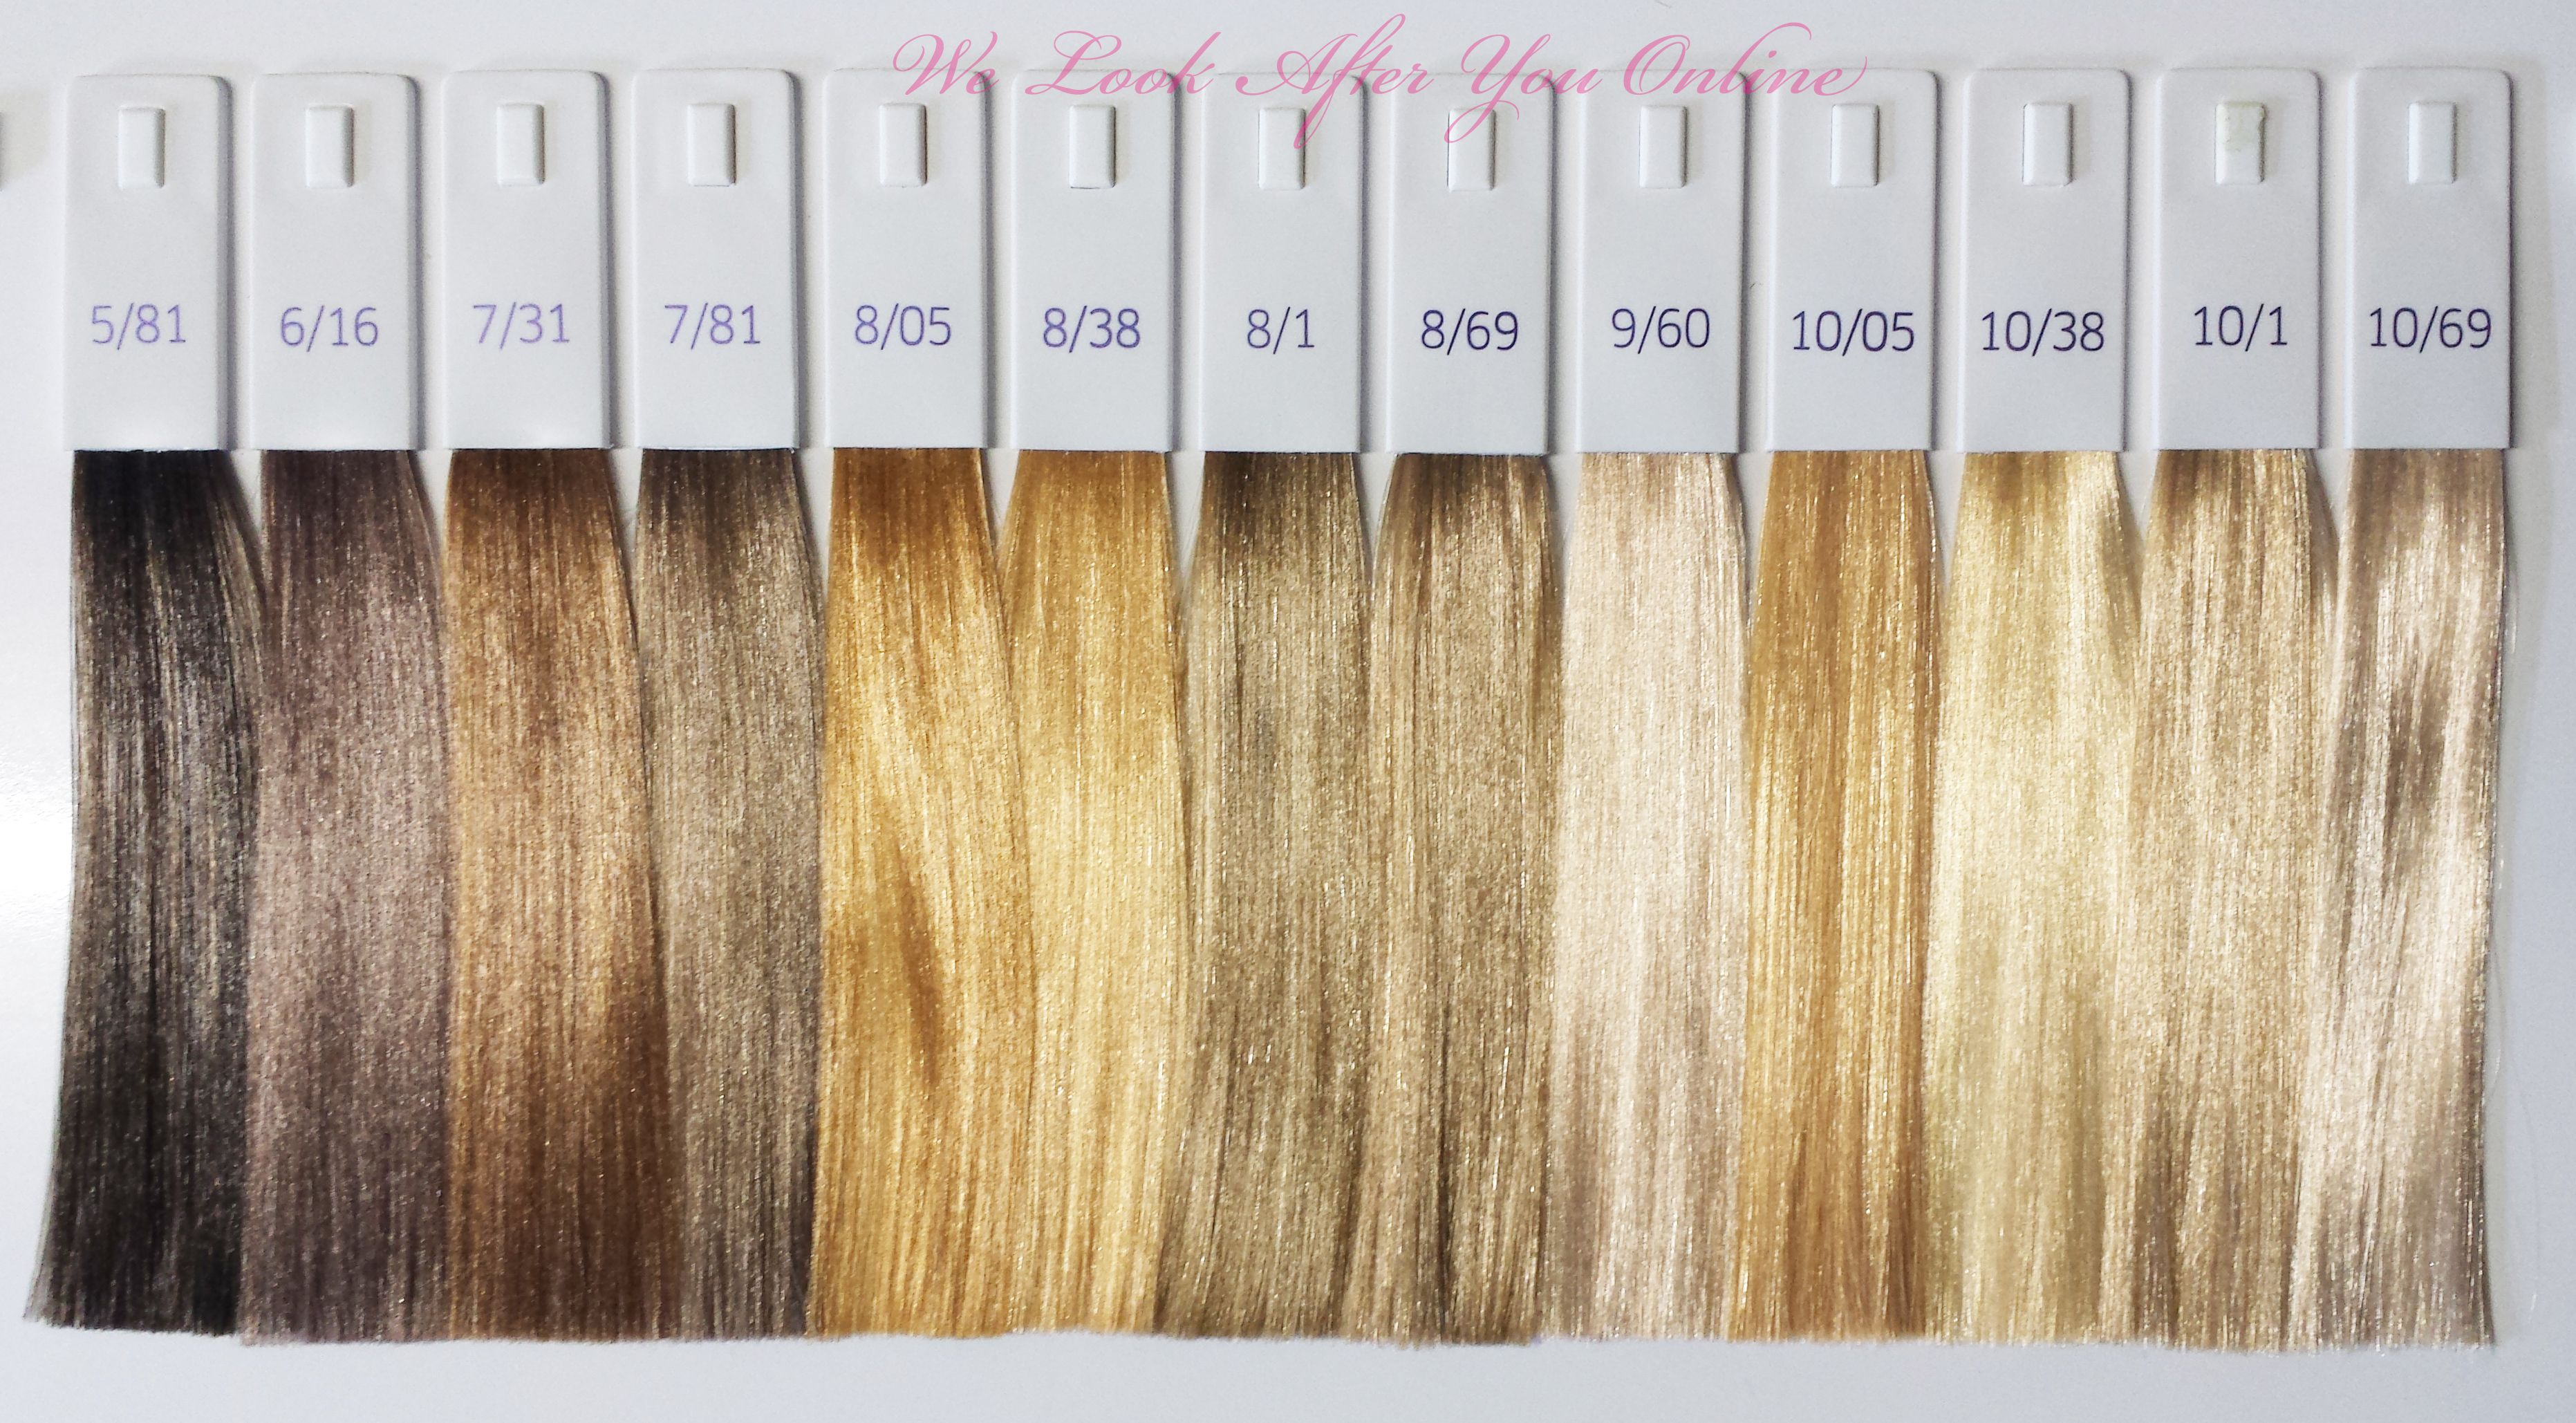 Wella Illumina COMPLETE 37 Shades Ava+ Developer Peroxide +Gloves LOOK@COLOURS | Hair coloring ...